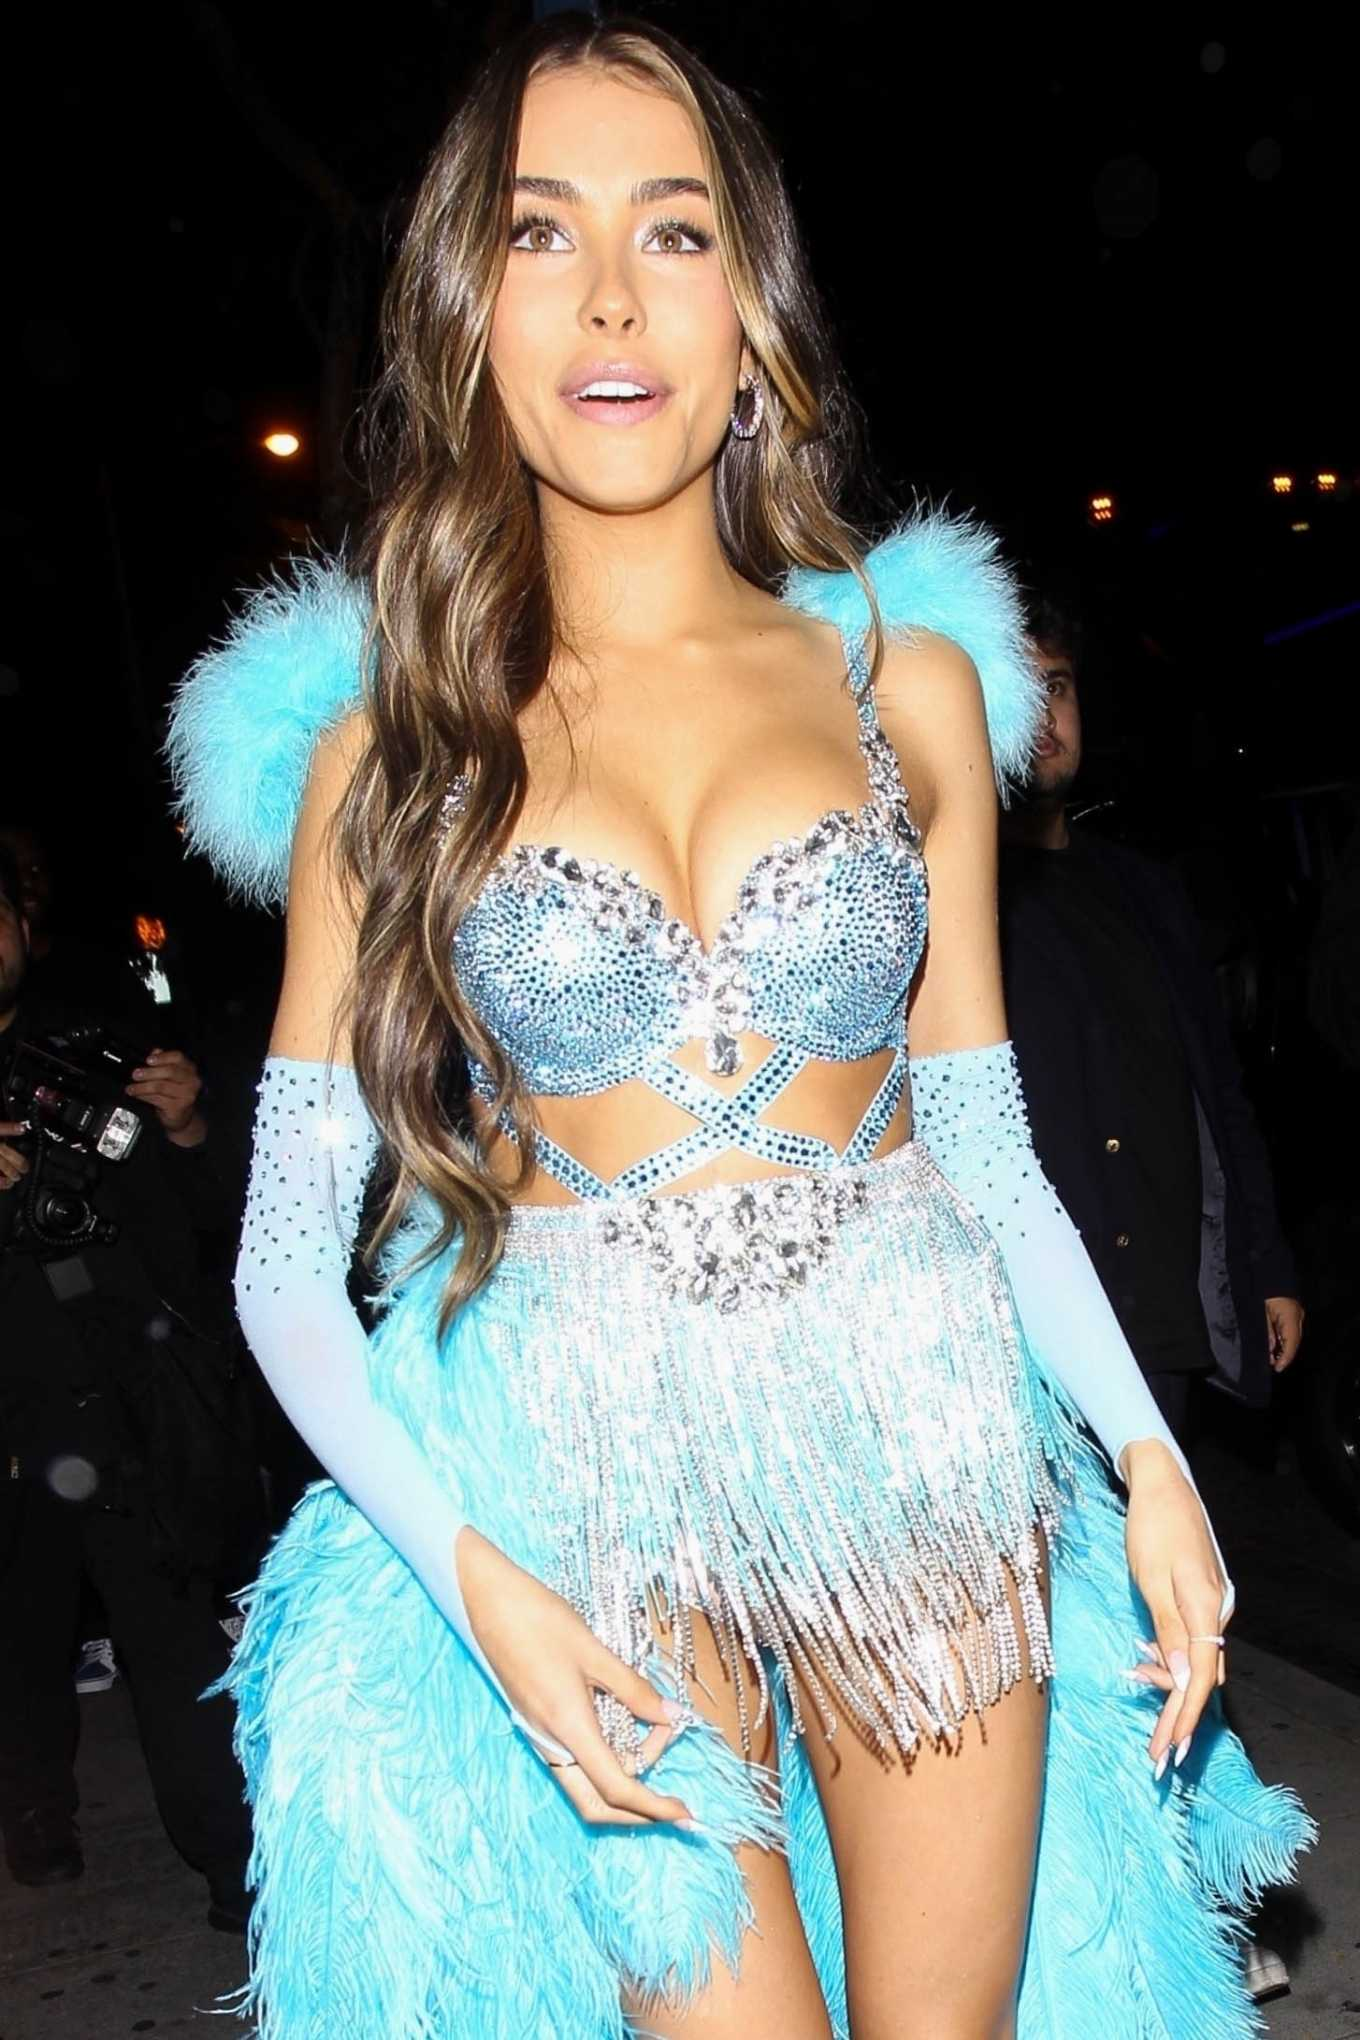 Madison Beer In a blue feather ensemble at her 21st birthday party at Delilah in Hollywood